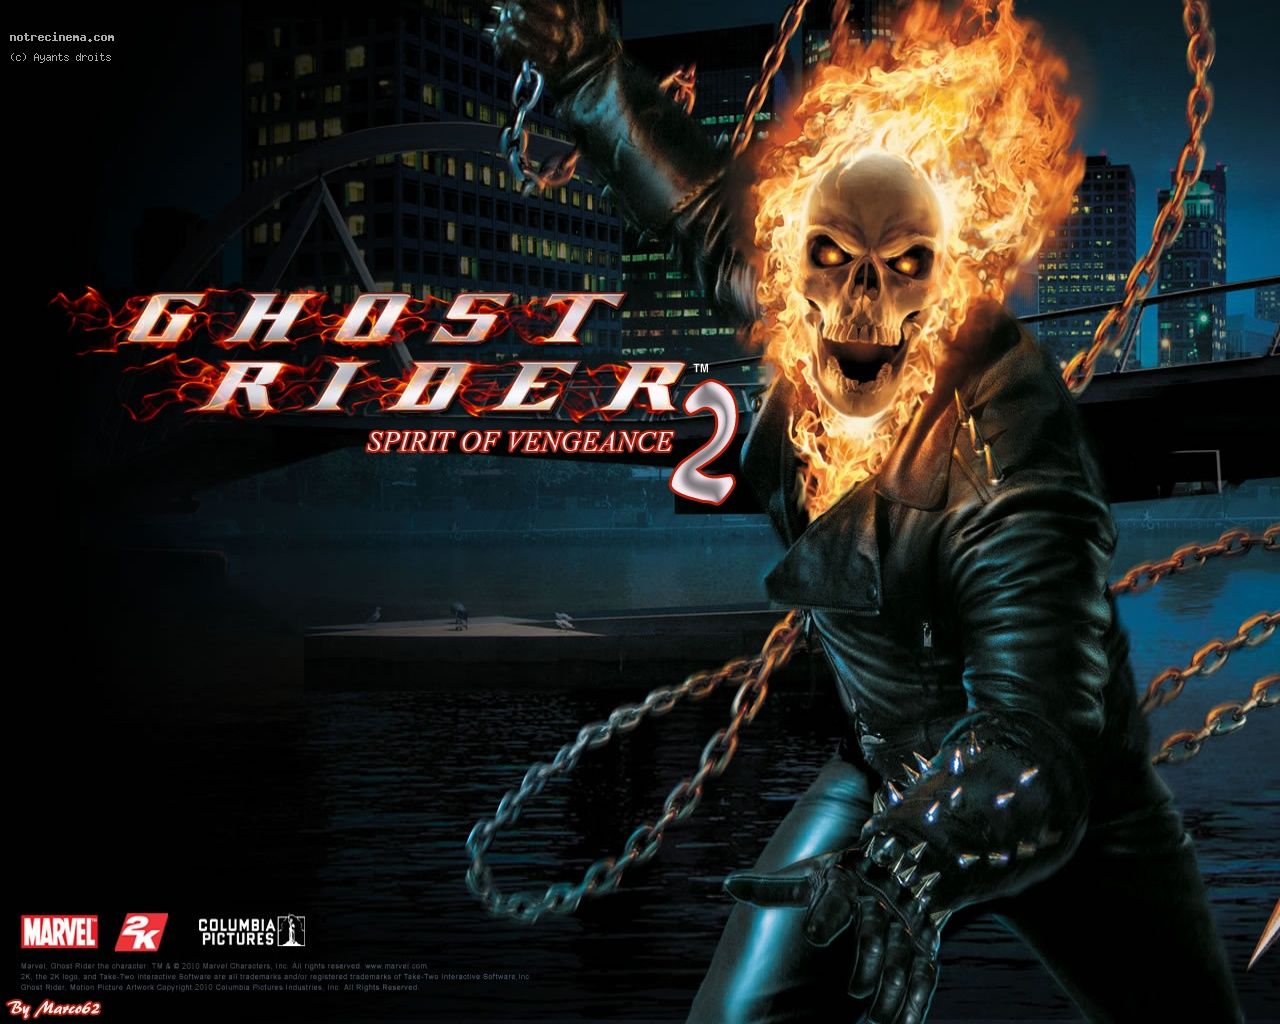 JKs Wing Ghost Rider 2 Movie Review 1280x1024